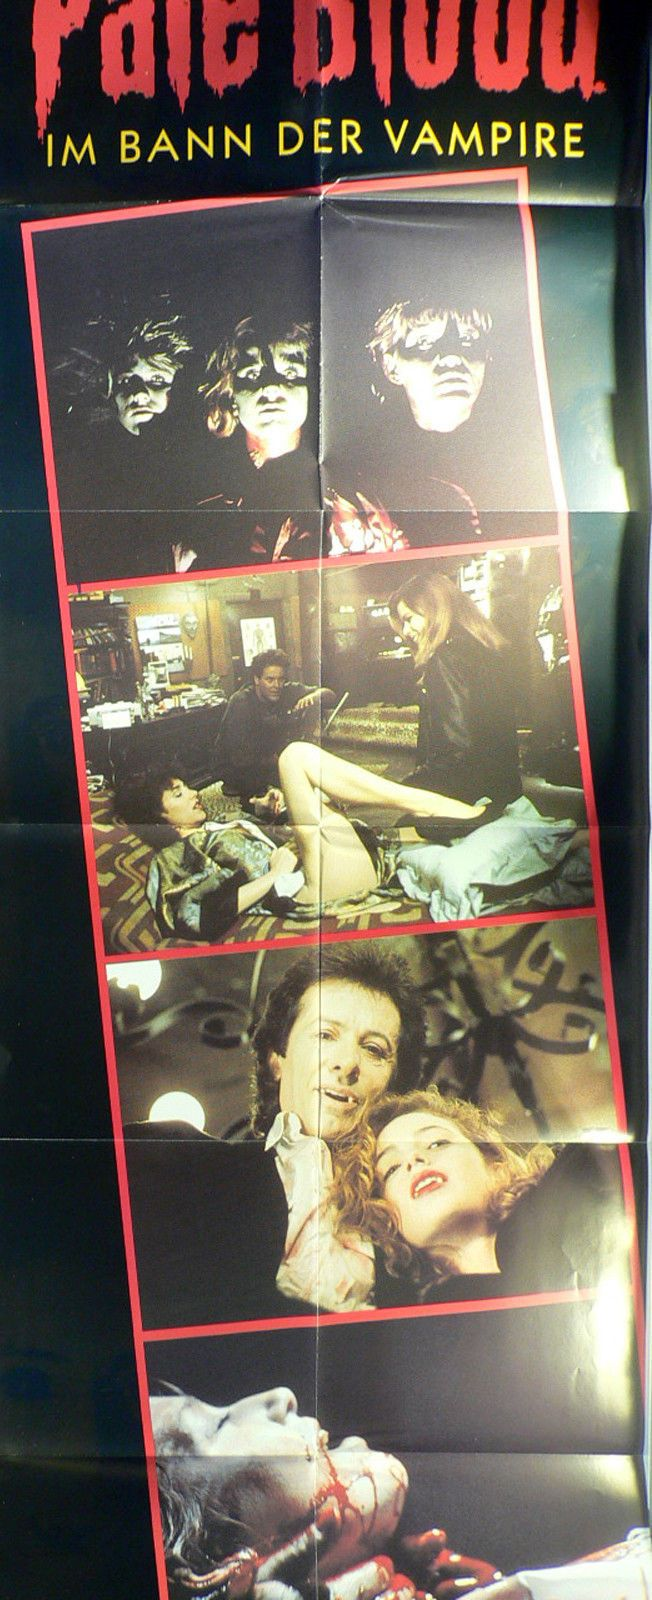 "PALE BLOOD (WINGS Hauser, Pamela Ludwig & George Chakiris, US, 1990), from the distributors of ""Hostage"", ""L.A. Bounty"", ""Rush Week""... As seen on a PAL VHS tape by IMV (EuroVideo, Germany, EU, videoposter only) #metalcore  #Zmovies #bohemian #poikatytöt  #goth #indie #arthouse #EU27 #vampires #occultisme #mumblecore #Nostalgie #kunst #Jane #Birkin #taidot #Lindemann #Rammstein #Erasmus #Europeseunie #feminisme #elokuva #Brexit #Trump #Femen #Karen #Elson #deathcore  #gothic #EEC #90er…"